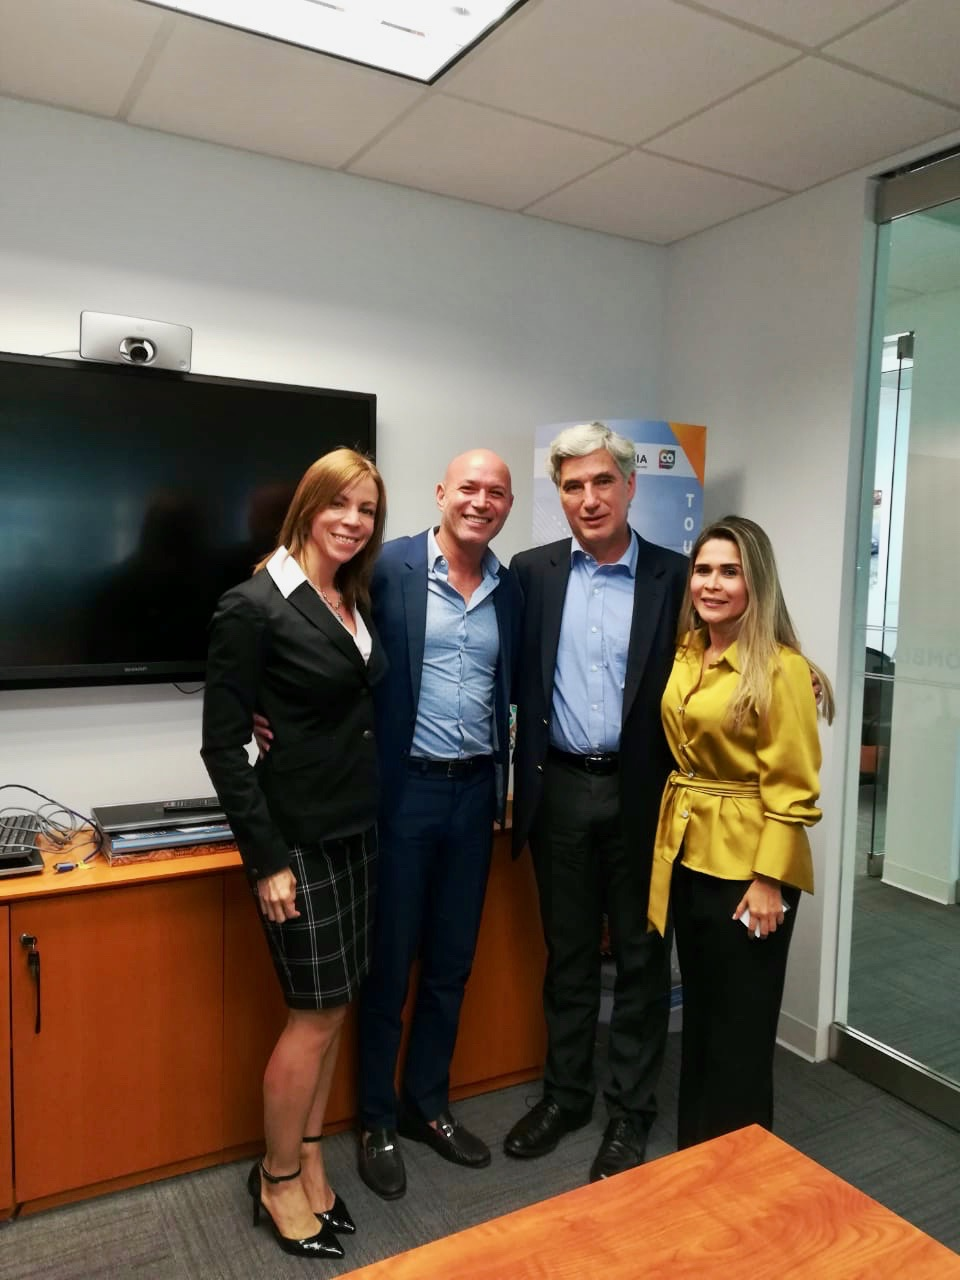 Friday, March 29, 2019 — From left to right, Monica Mora (VP of Operations, bioaccess.™), Julio G. Martinez-Clark (CEO, bioaccess.™), Juan Pablo Uribe (Colombia's Minister of Health and Social Protection), and Silvia Rodriguez (CEO, Caribbean Health Group) met at PROCOLOMBIA's office in Miami, FL to discuss how to boosts Barranquilla's capacity to attract more clinical research trial projects to the city through a collaboration between Caribbean Health Group and bioaccess.™